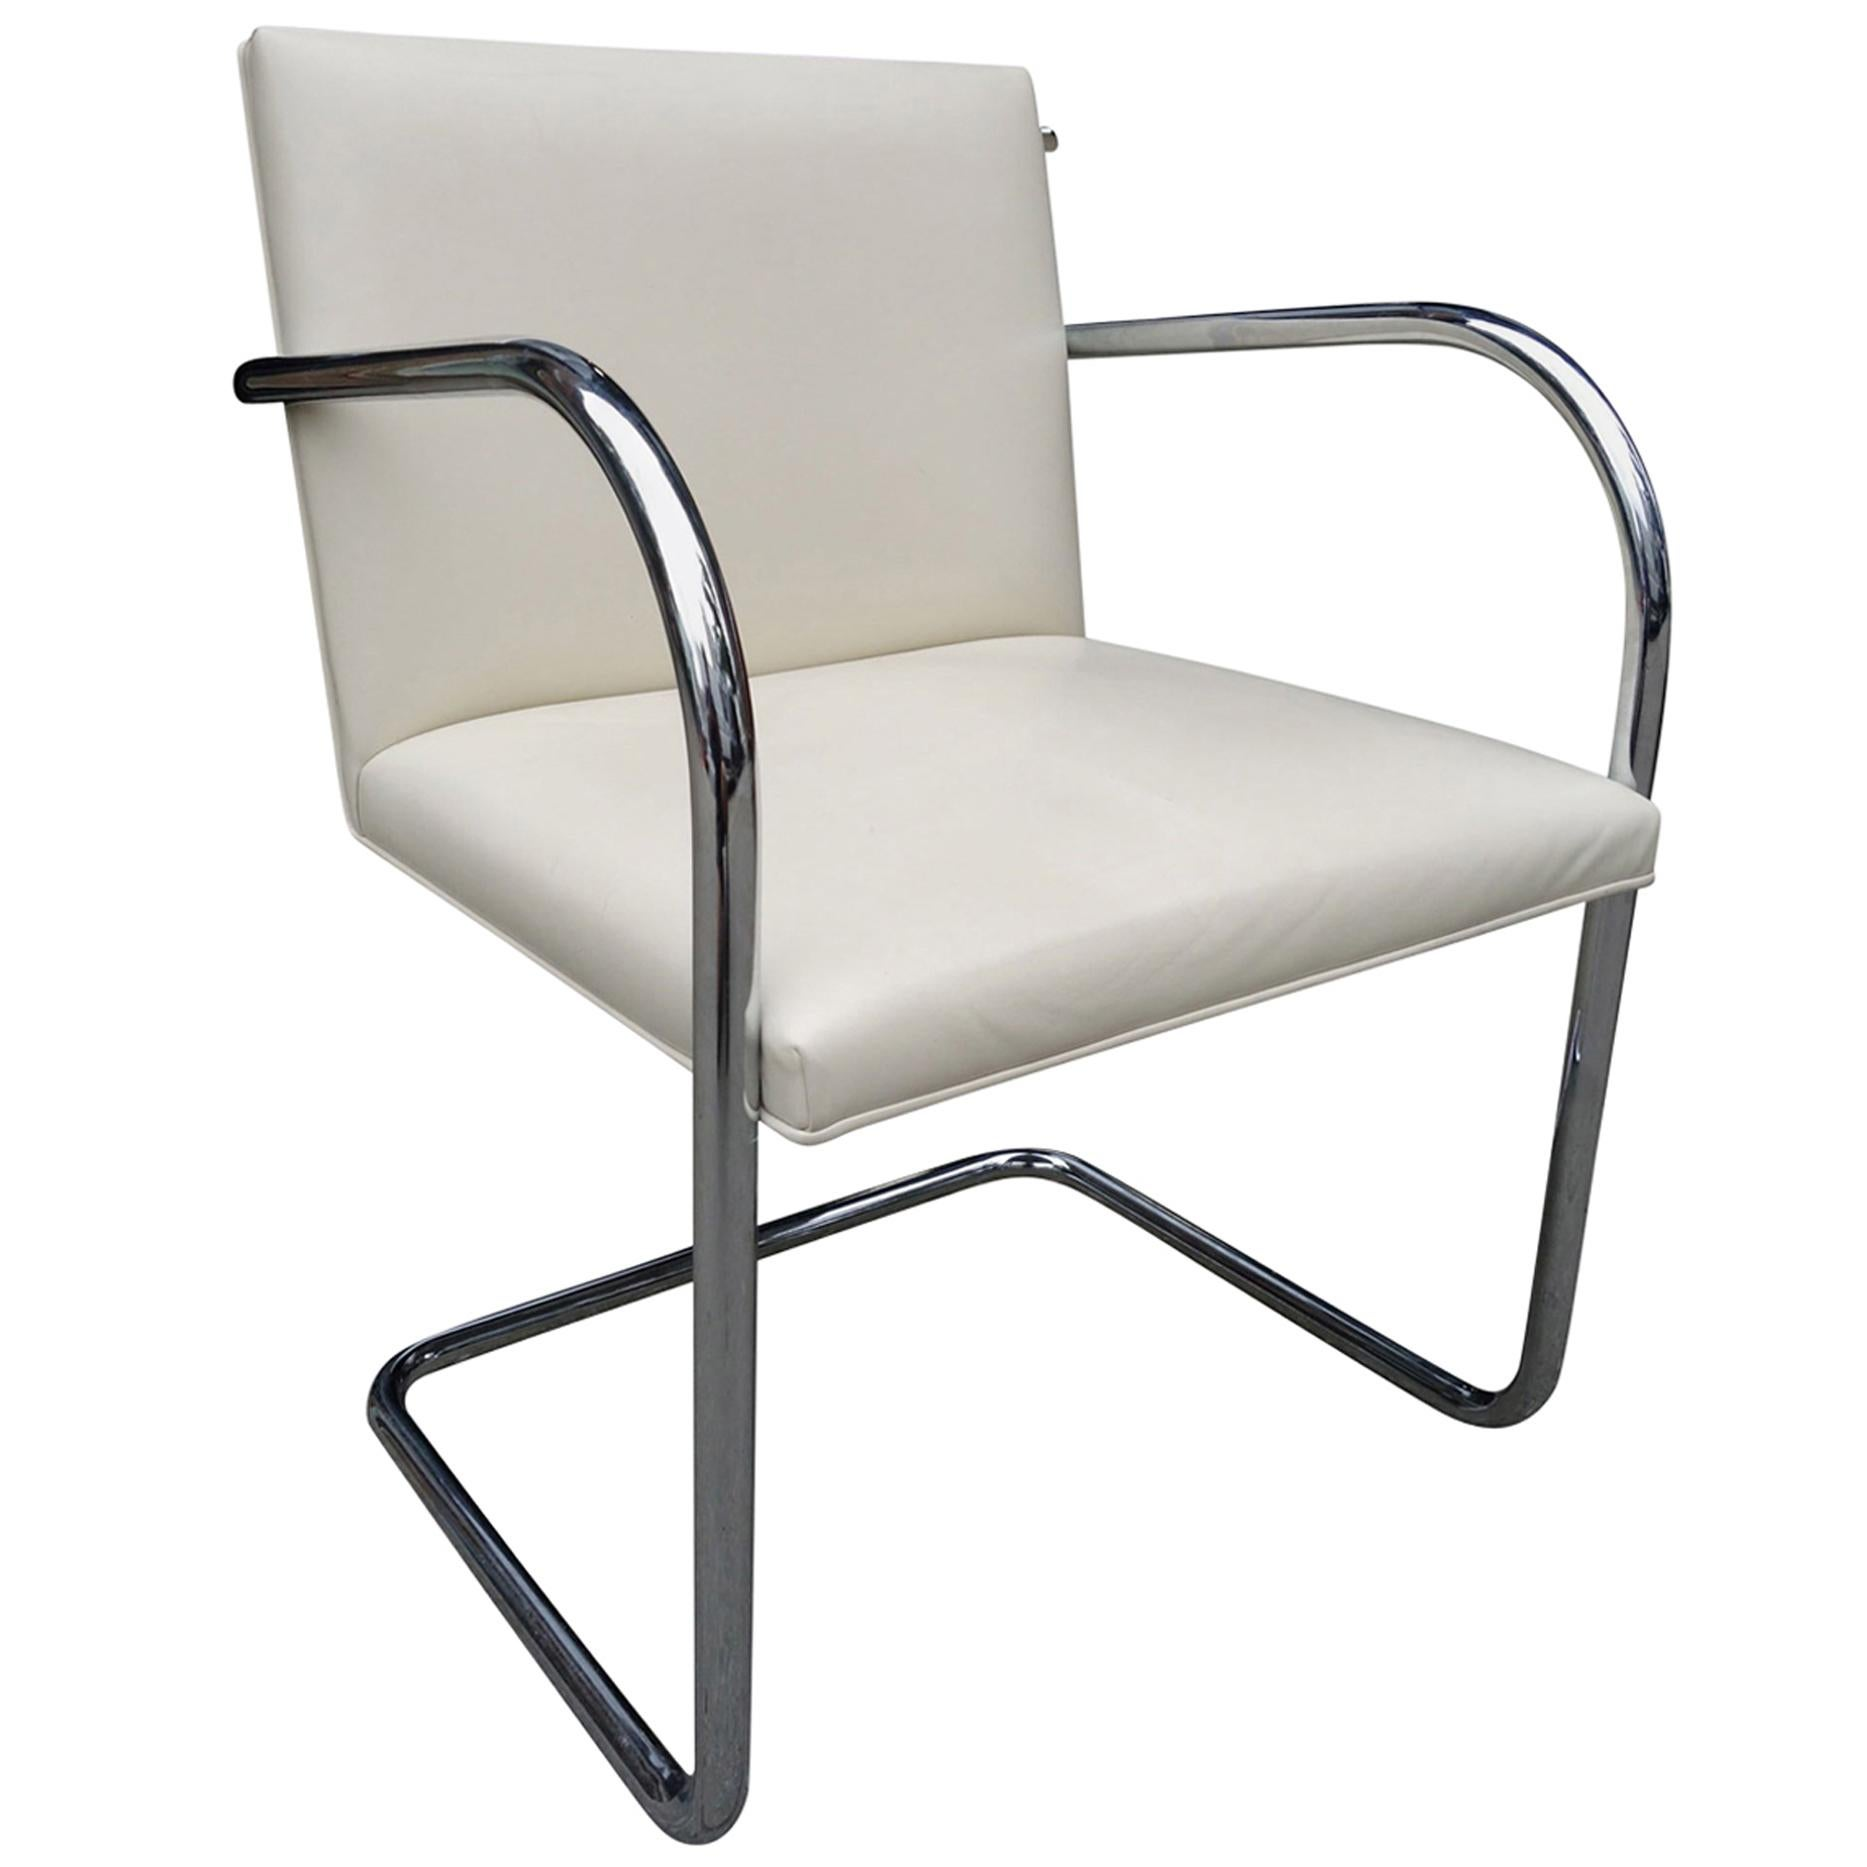 Midcentury Knoll Brno Chairs By Mies Van Der Rohe In White